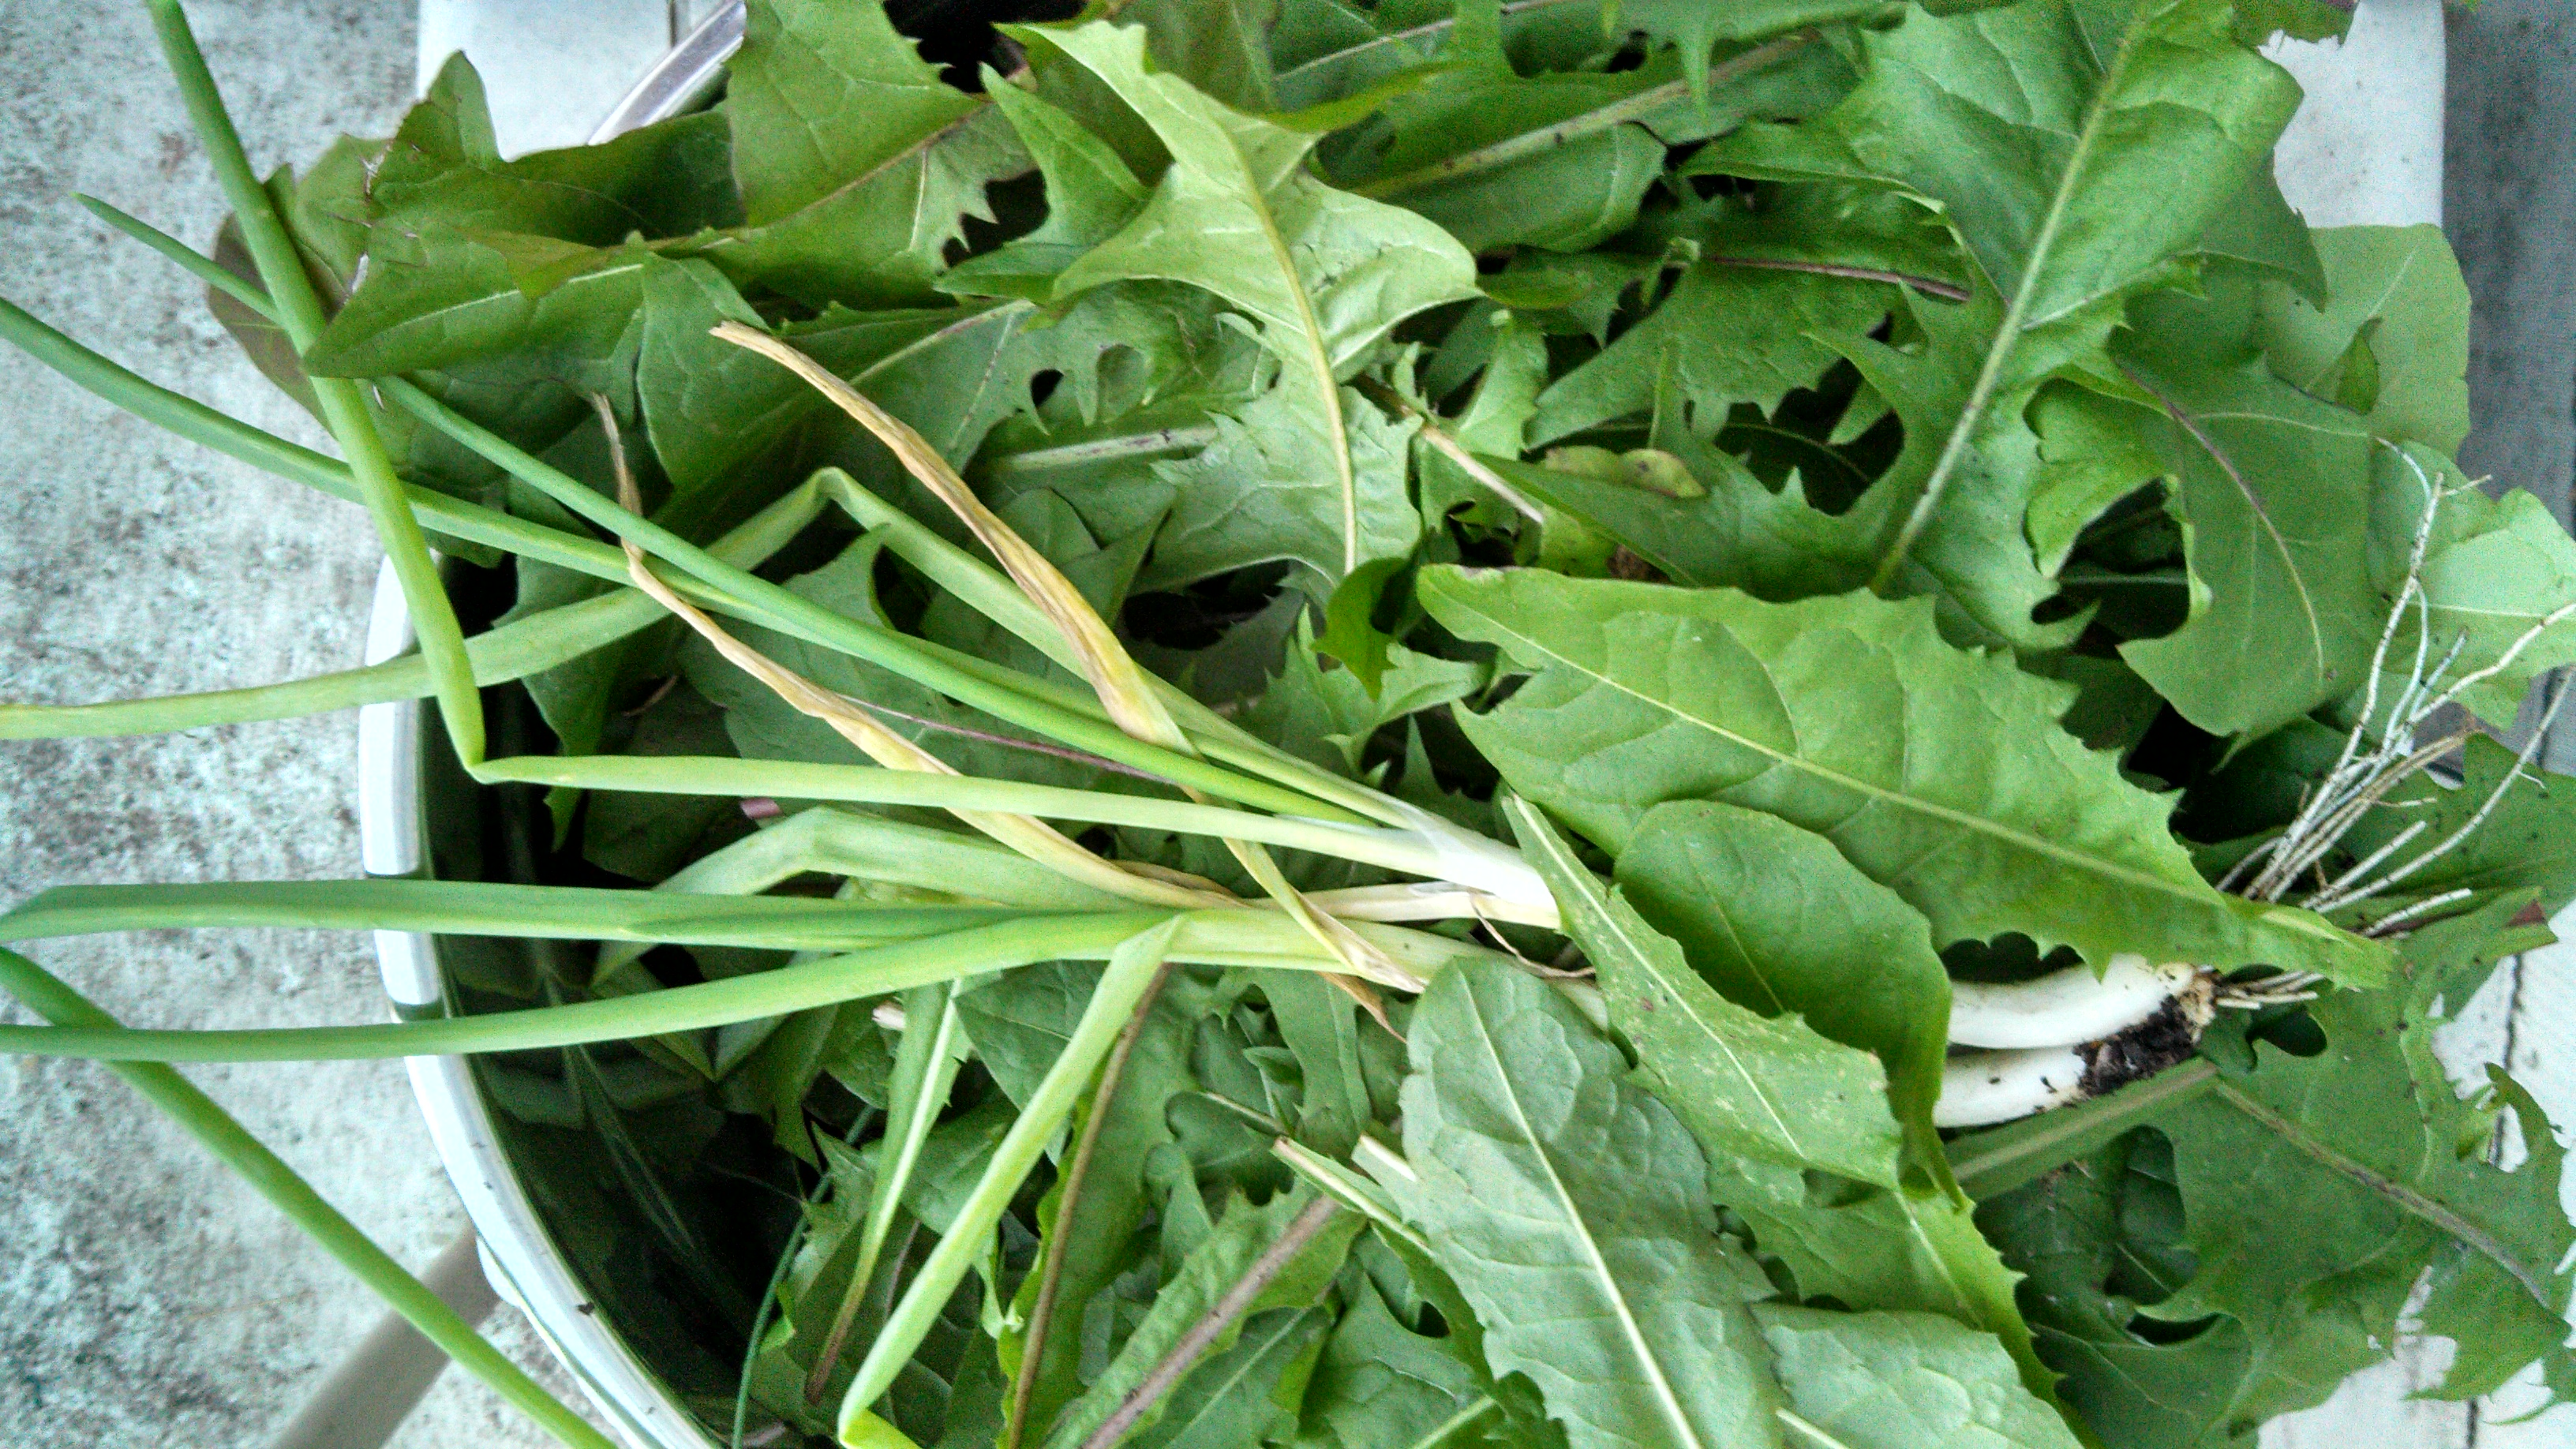 chard, dandelion greens and green onions from my winter garden